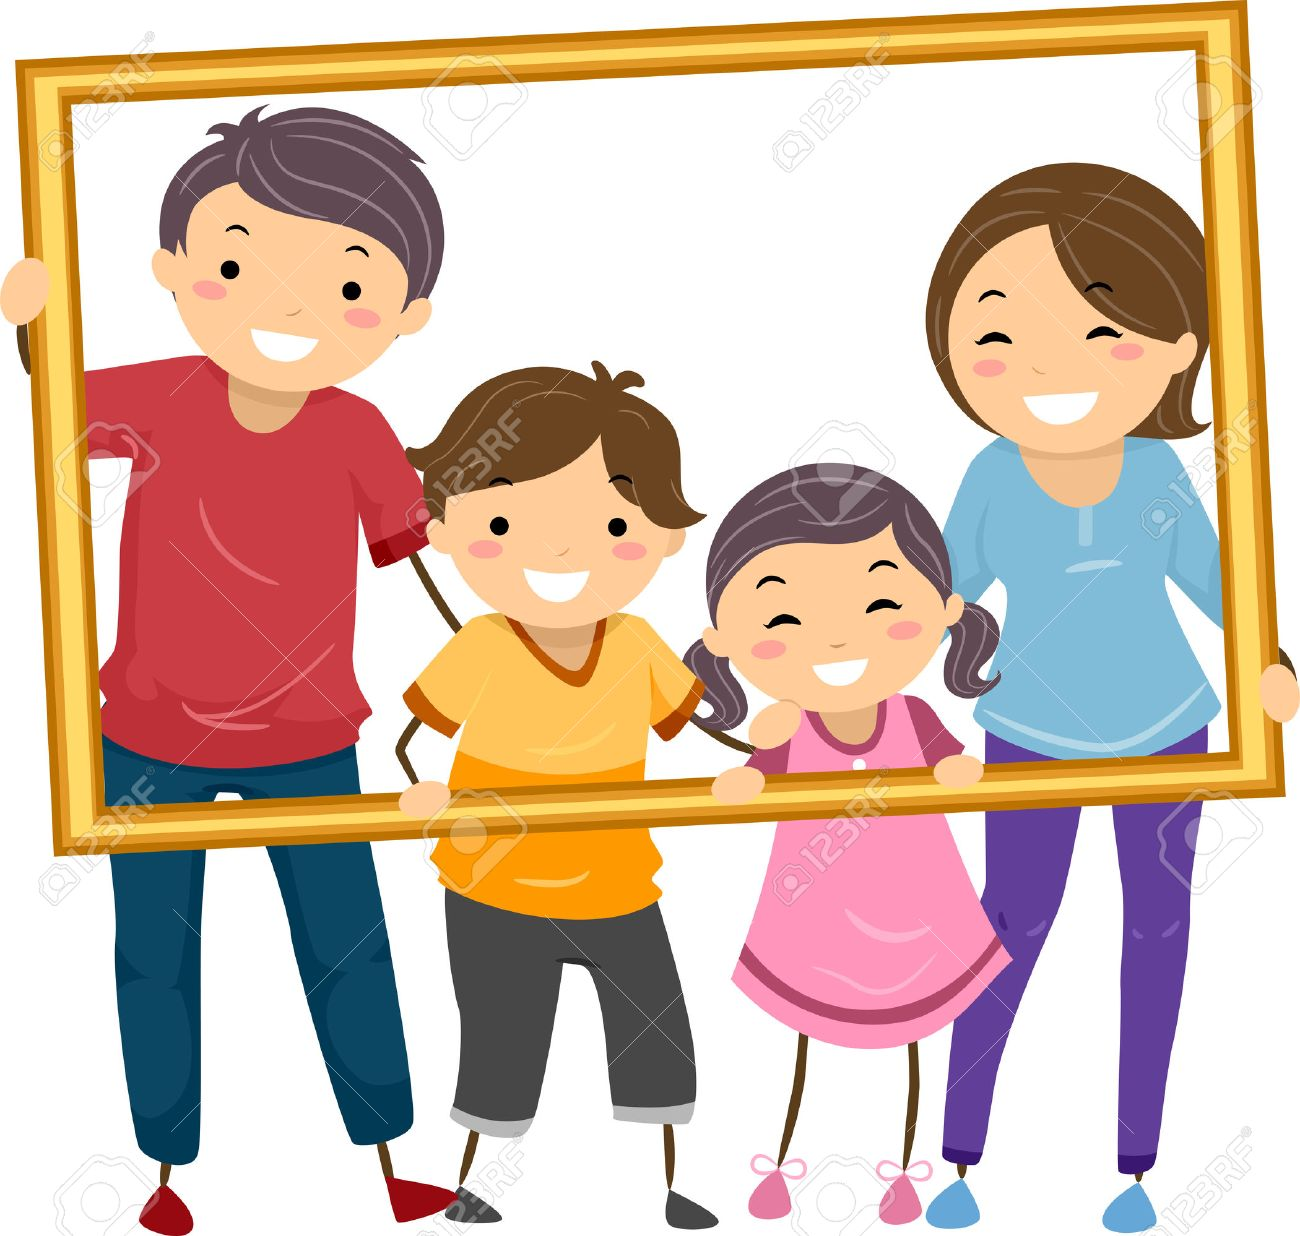 hight resolution of illustration featuring a happy family holding a hollow frame stock vector 31689328